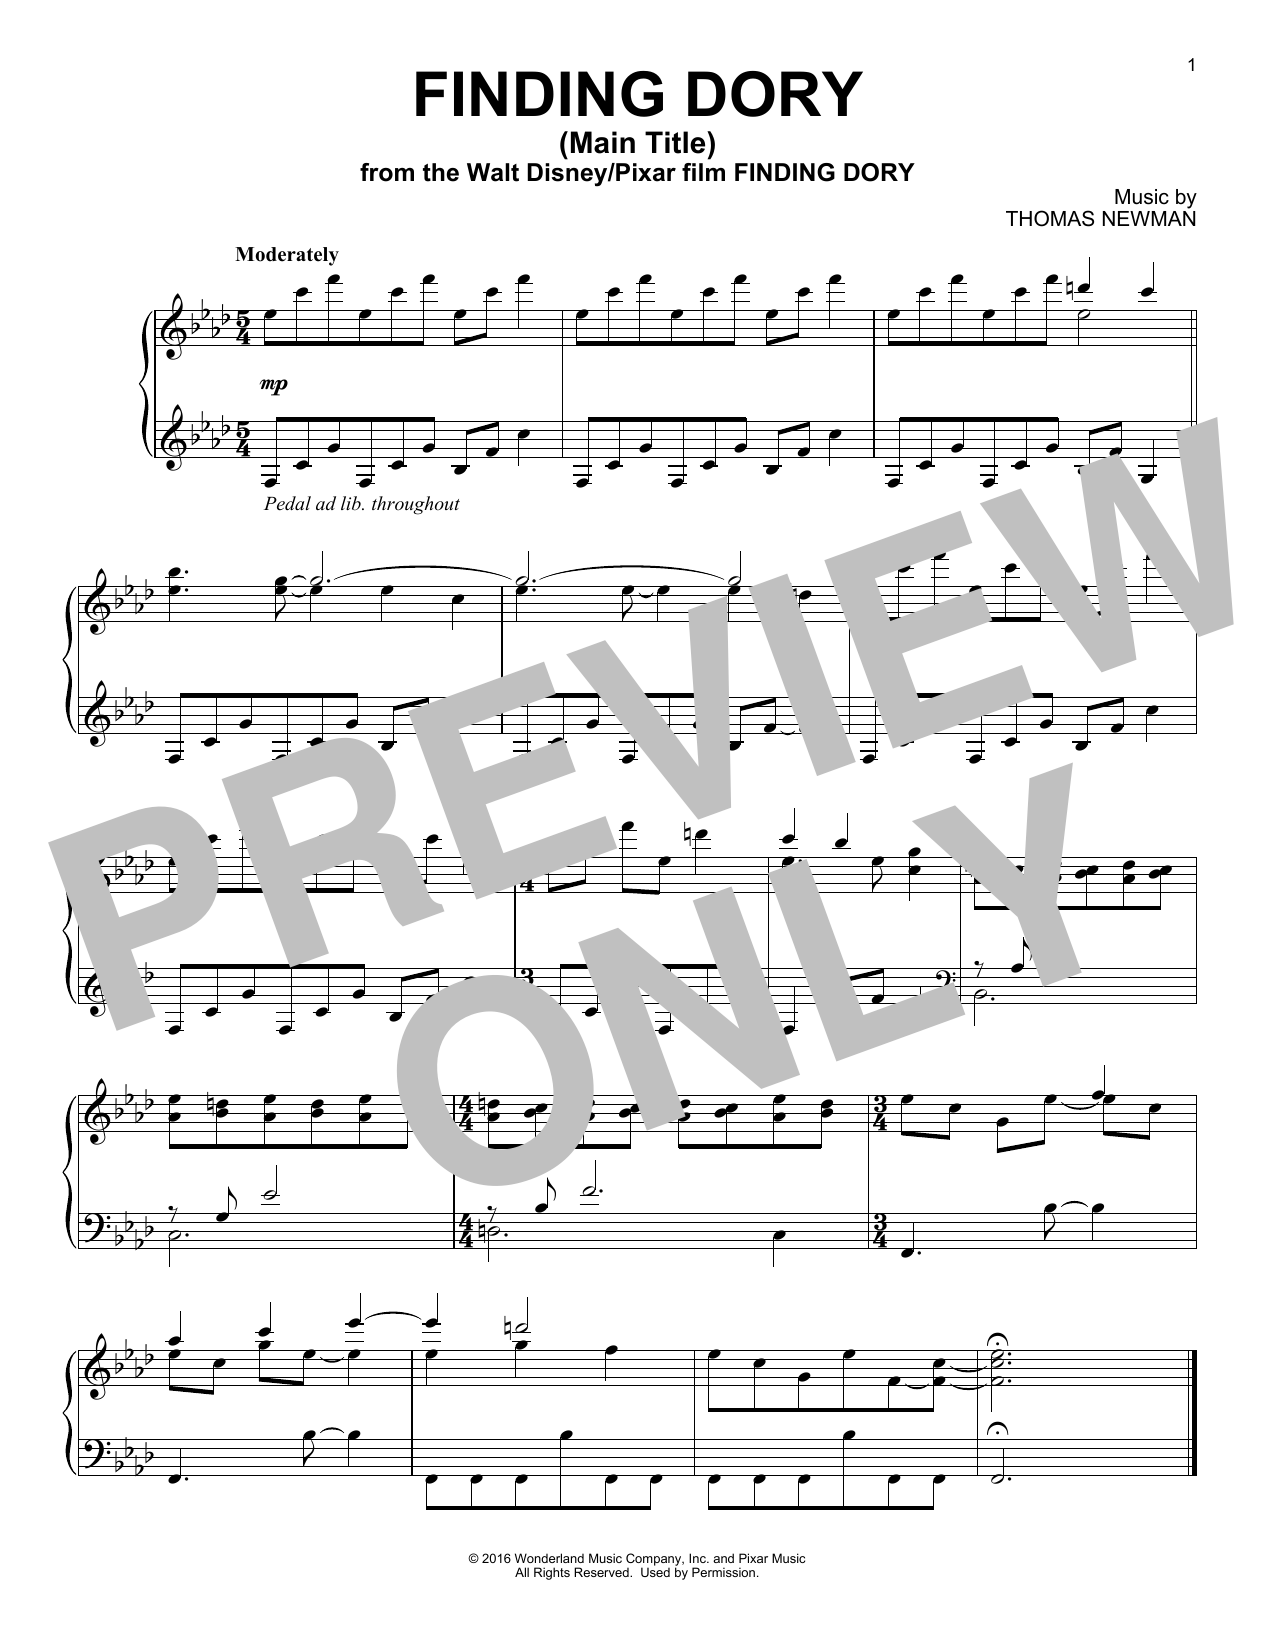 Finding Dory (Main Title) Sheet Music